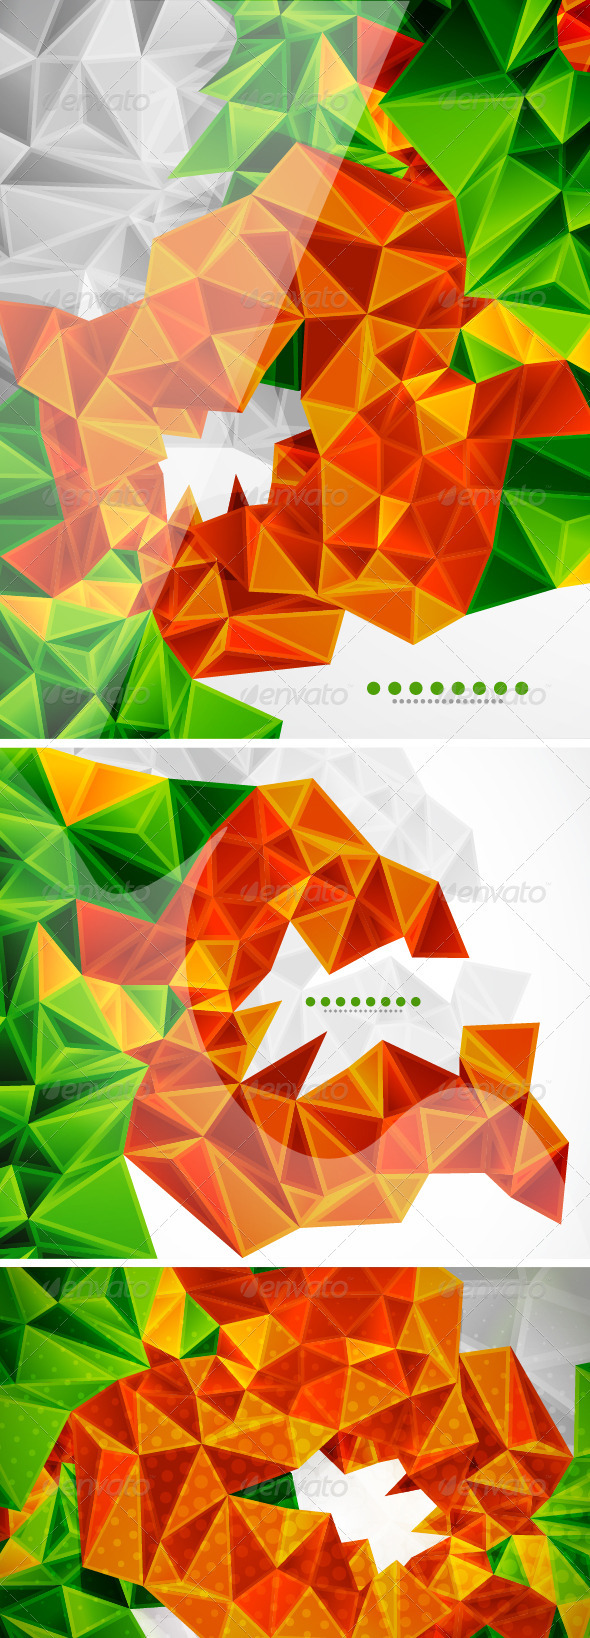 Vector Mosaics Backgrounds - Backgrounds Decorative